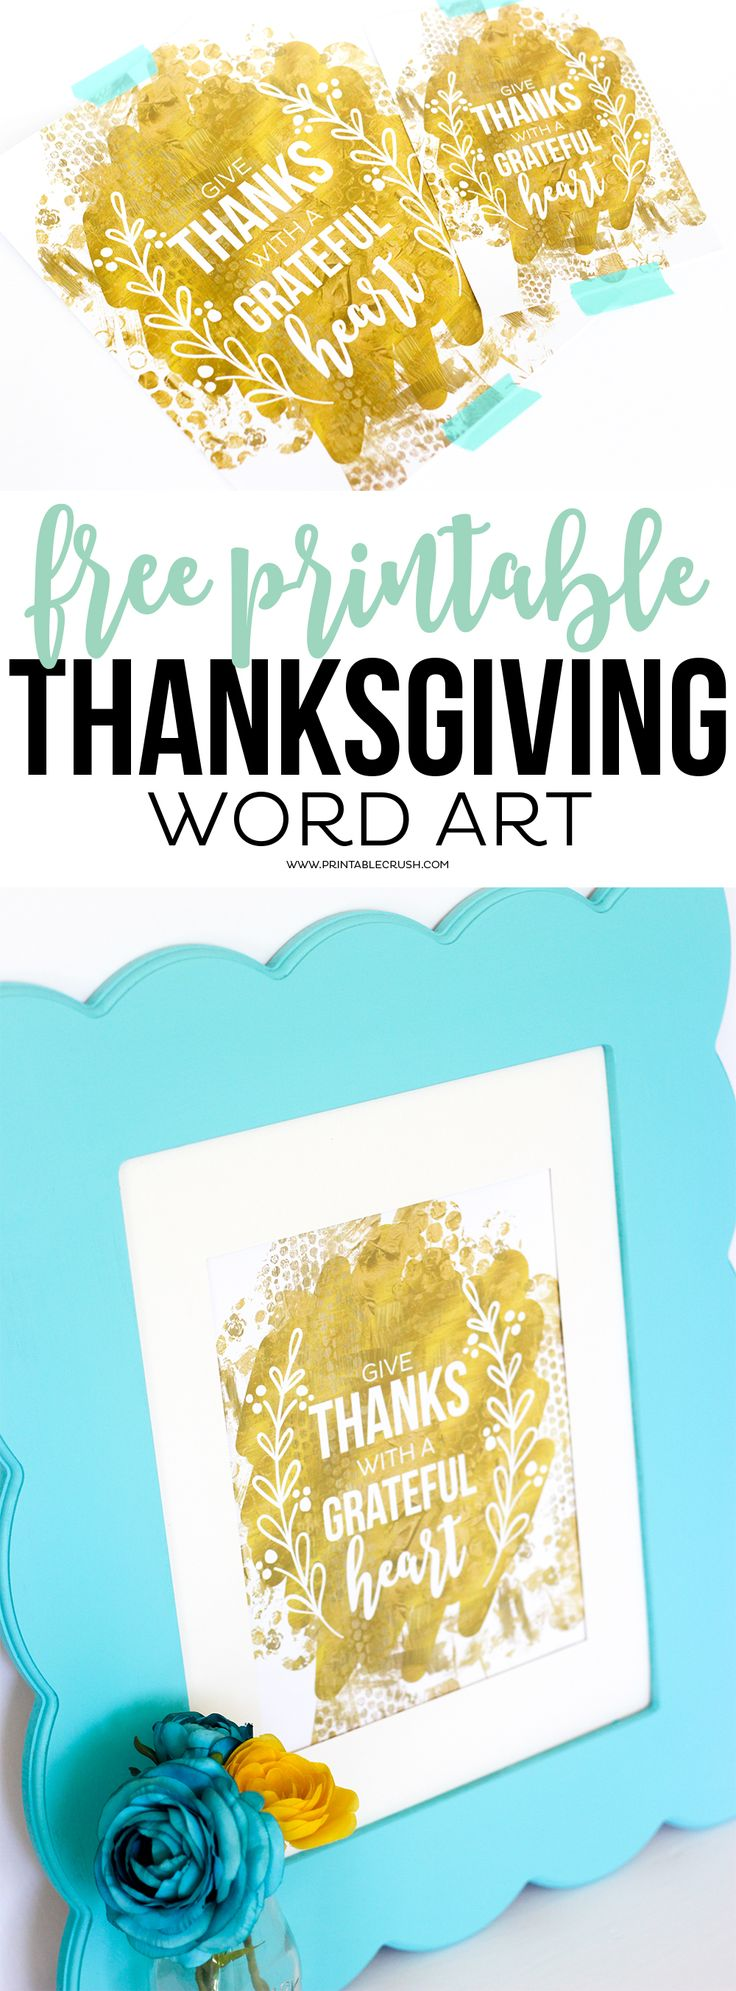 148 best Holiday | Thanksgiving images on Pinterest | Holiday ideas ...